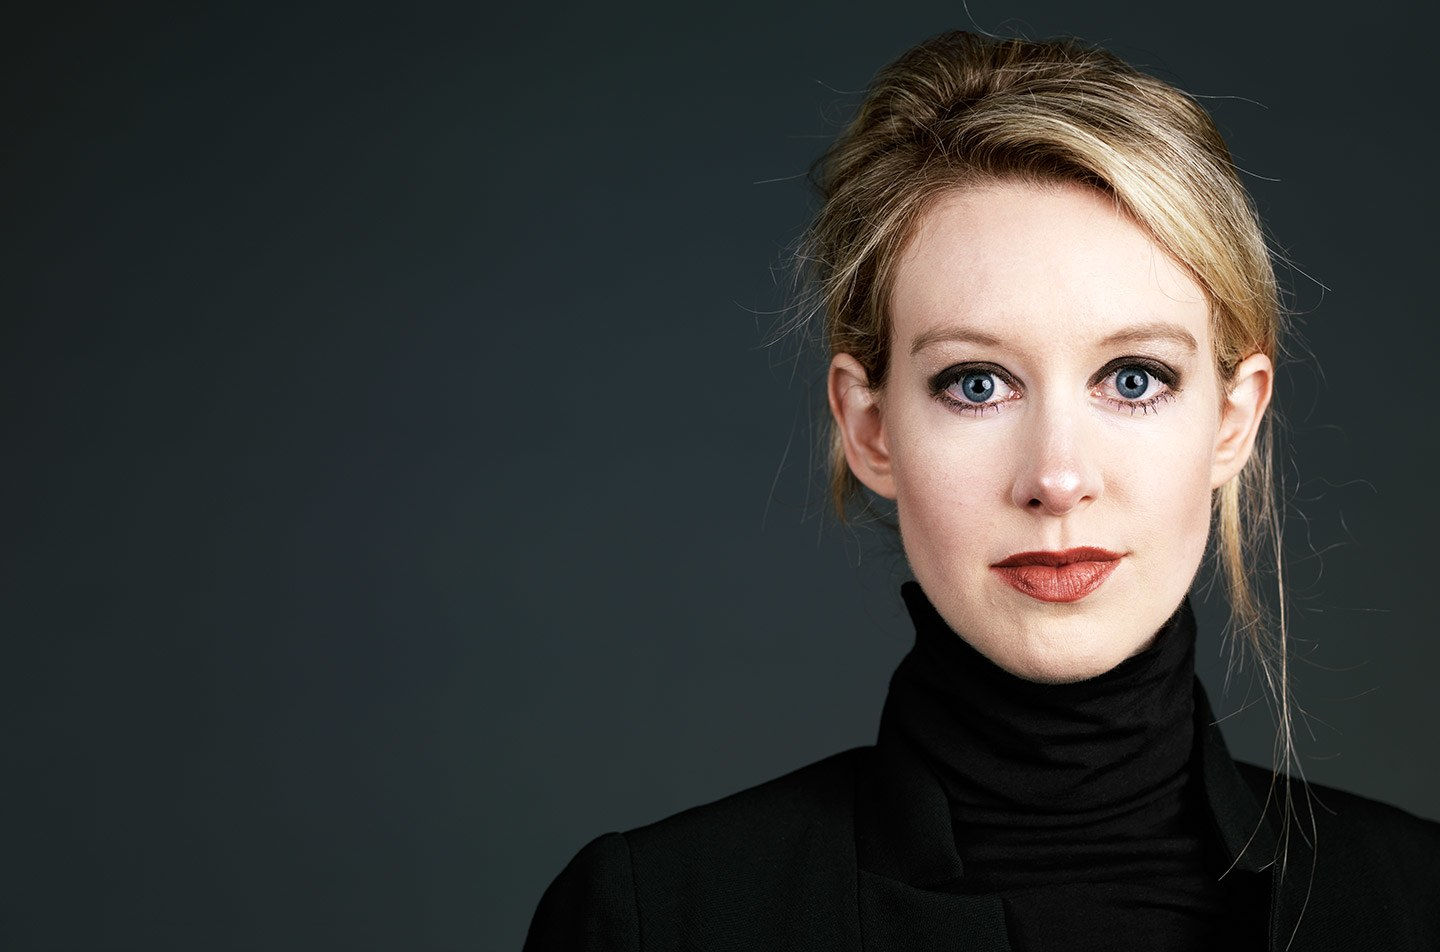 In a searing investigation into the once lauded biotech startup Theranos Nick Bilton discovers that its precocious founder defied medical expertseven